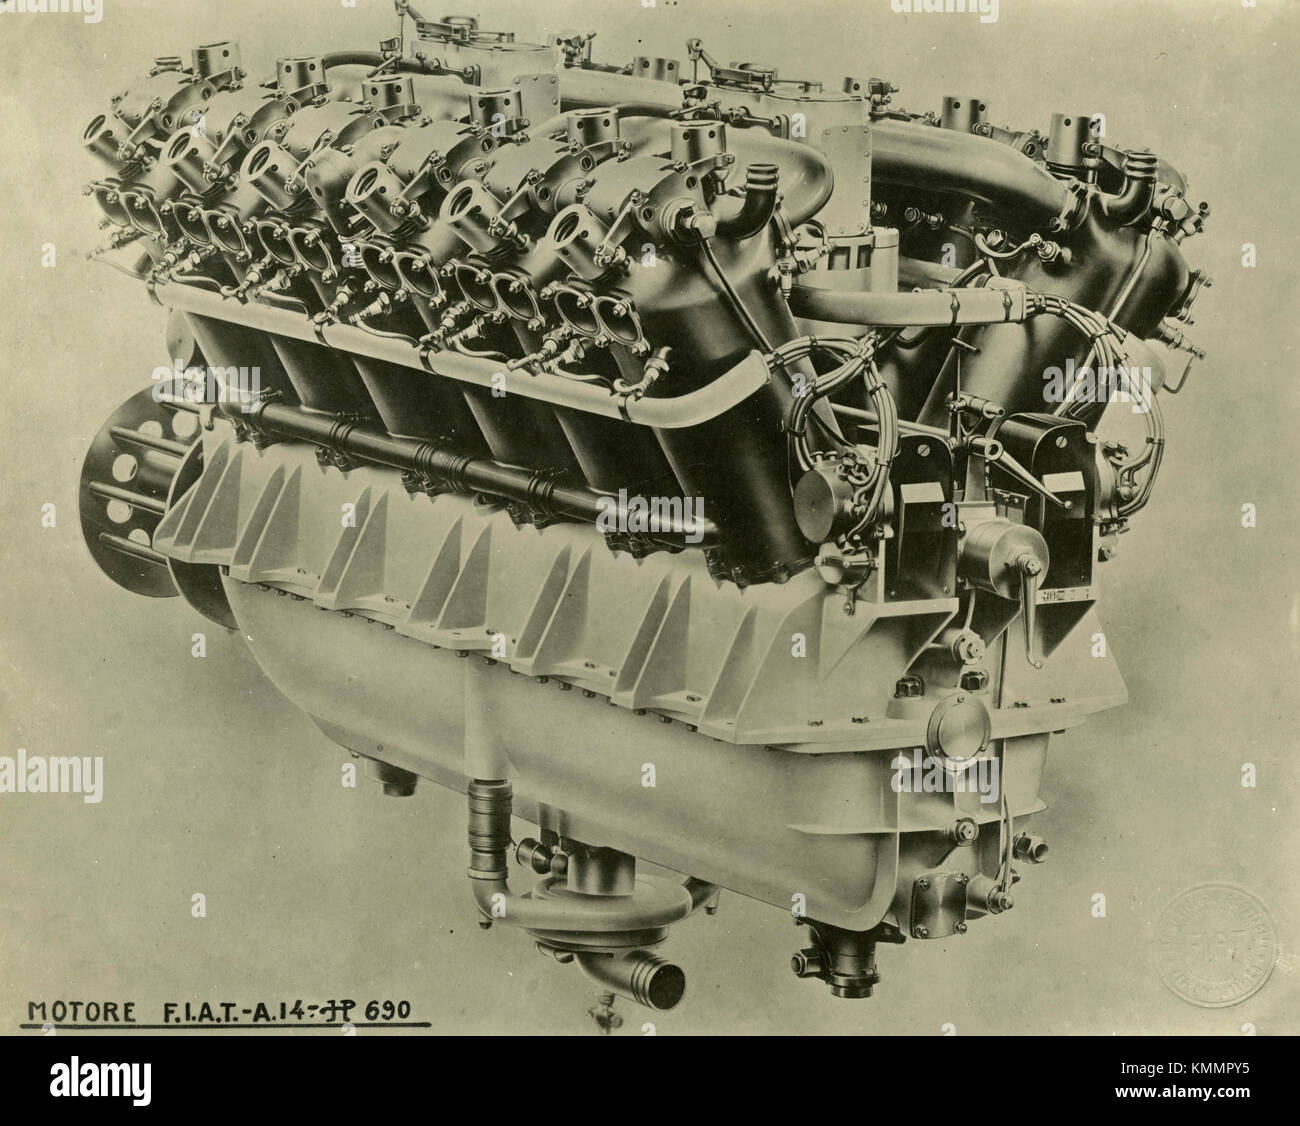 Moteur FIAT A.14 de l'aviation 690 HP, Italie 1920 Photo Stock